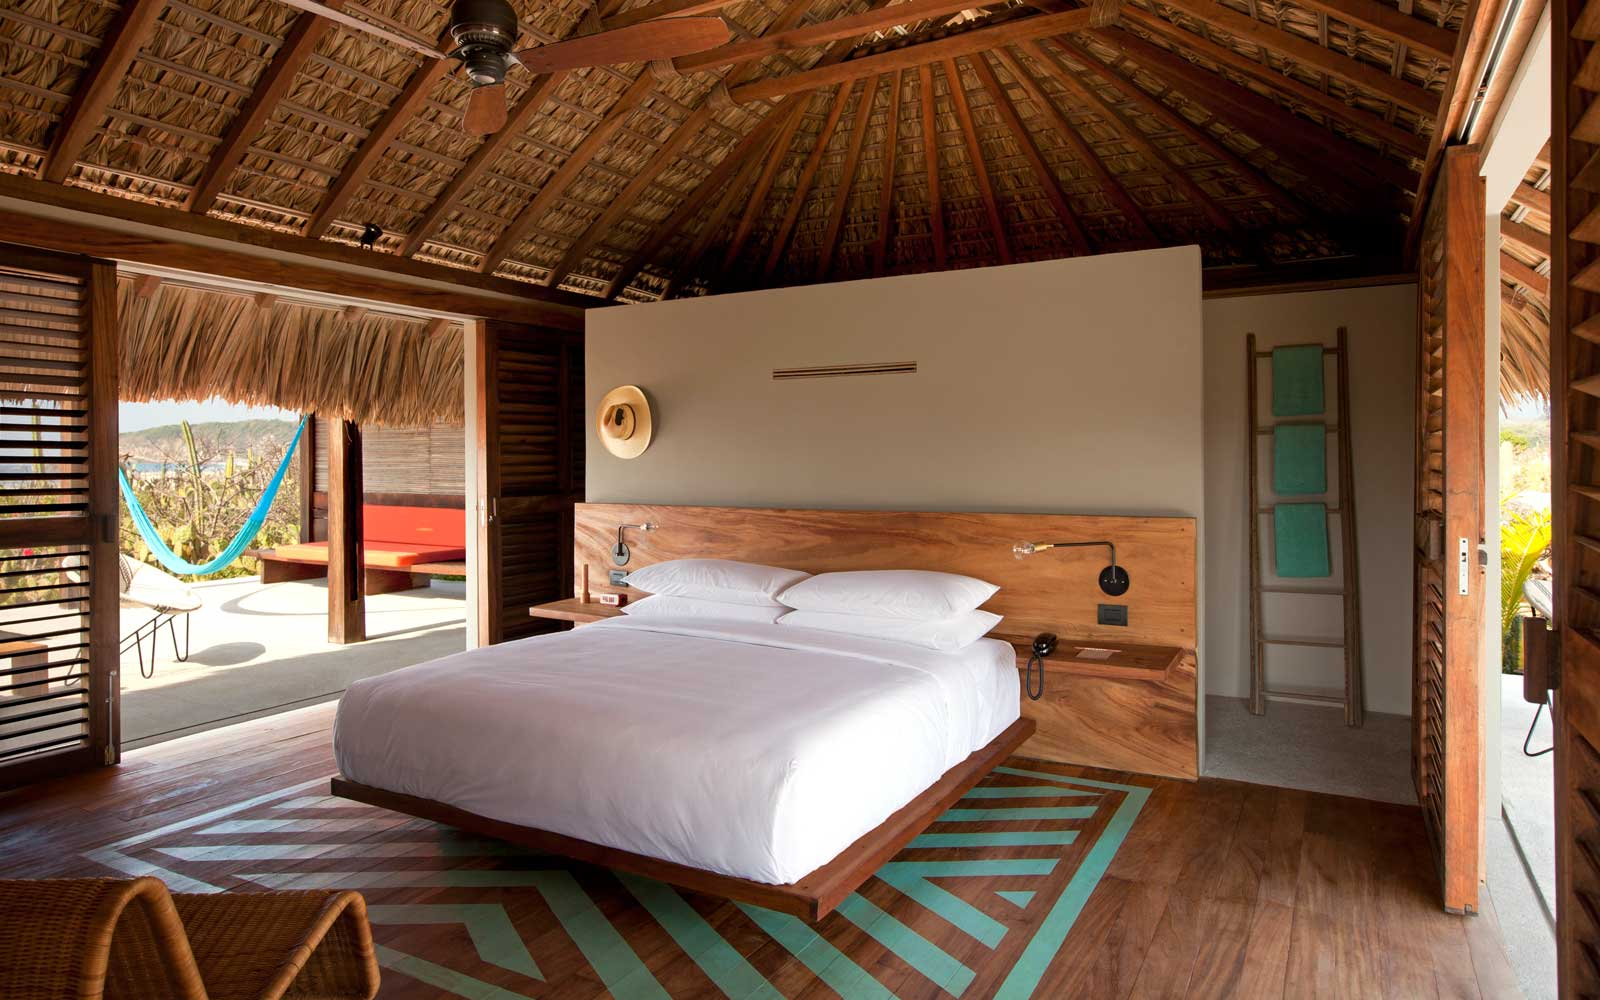 Book a Stay at Any Grupo Habita Hotel in Mexico for Only $140 Per Night